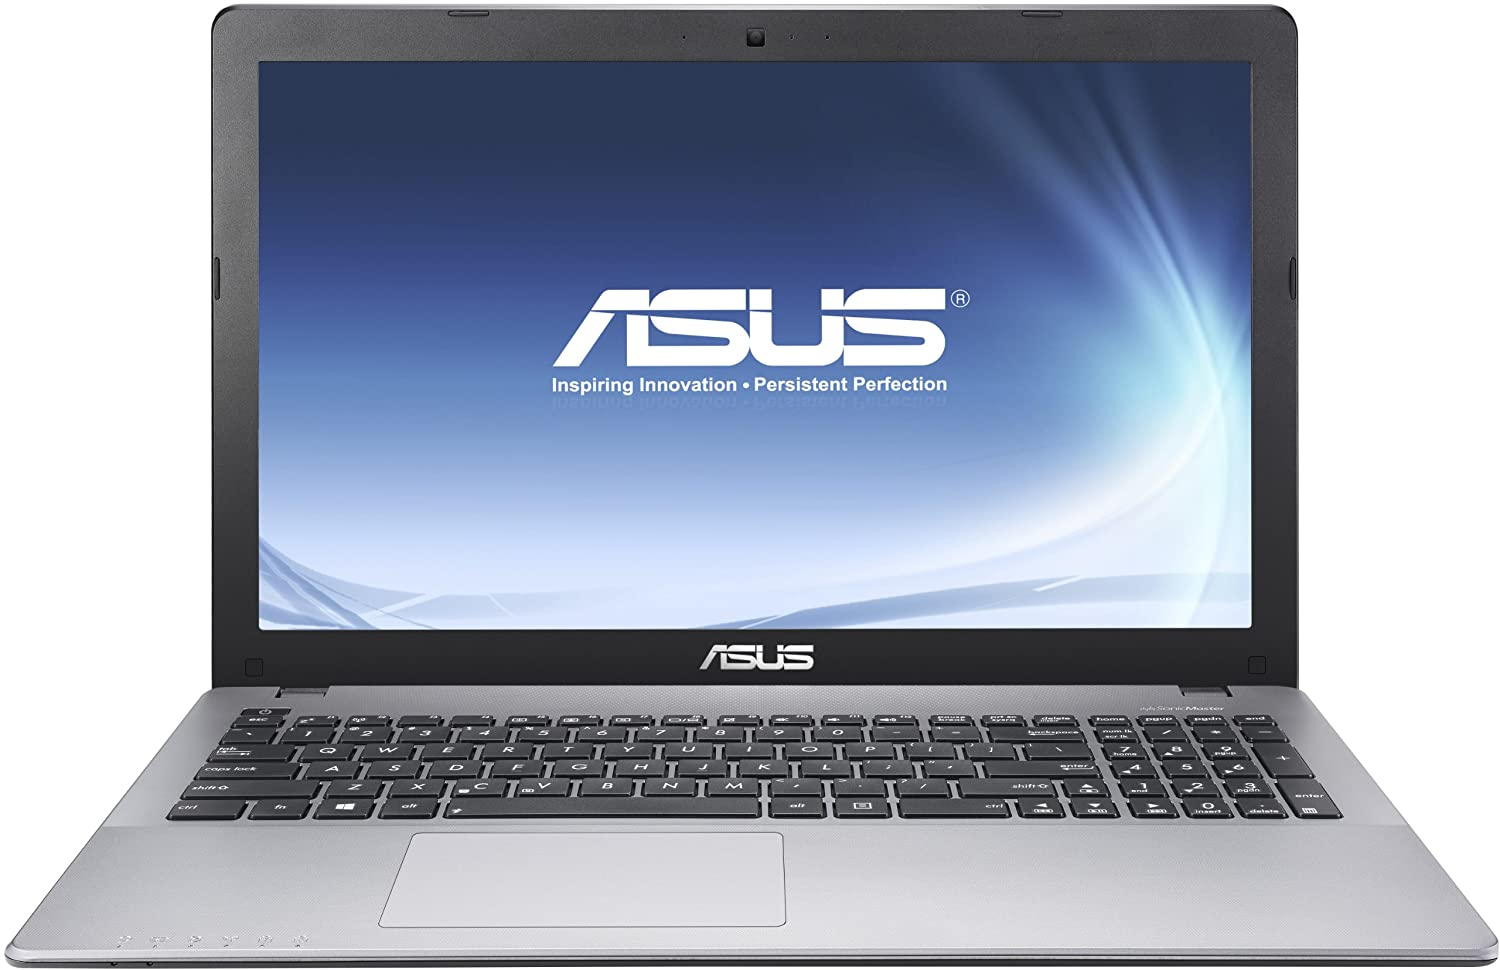 ASUS F550CA DRIVERS FOR WINDOWS XP